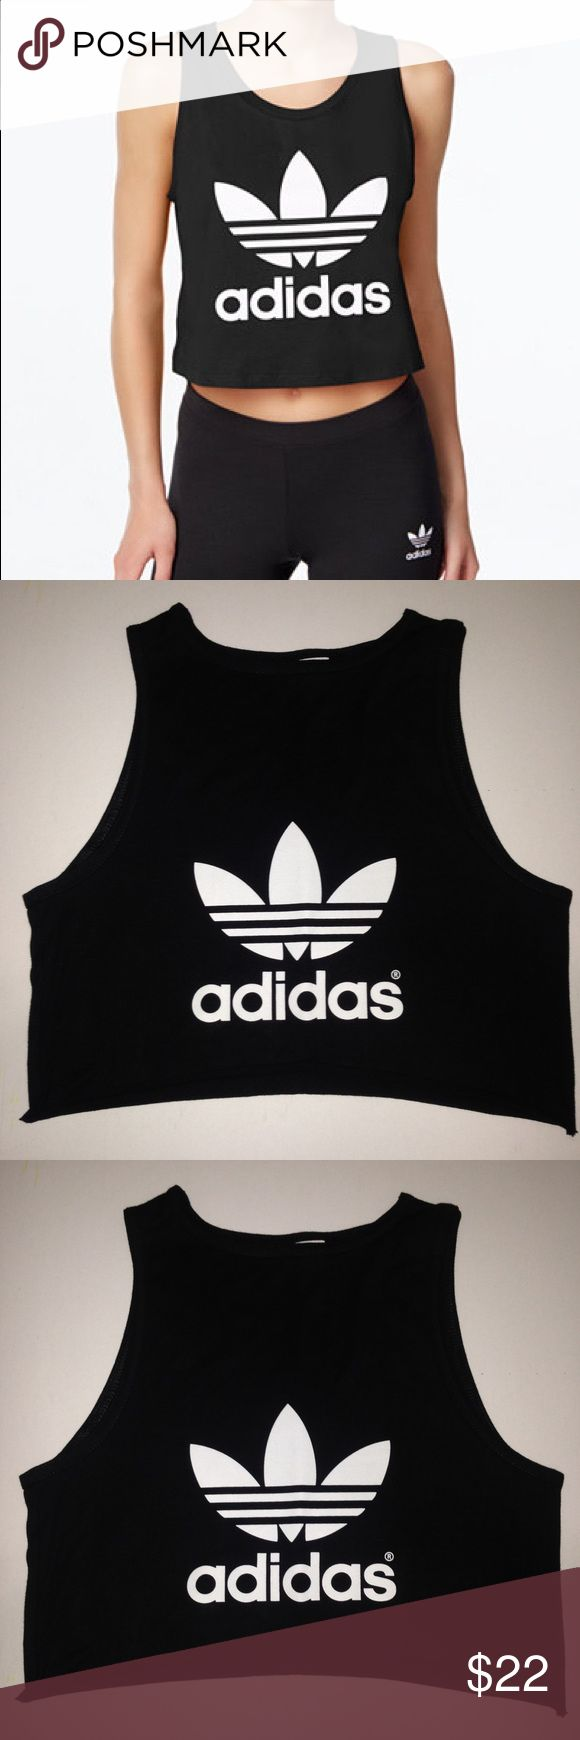 🚨NEW🚨 ADIDAS CROP TANK 100%BRAND NEW ADIDAS CROP TANK TOP SIZE M. Check my other listing Nike, adidas, forever 21, champion, converse , triangl , bikinis, hollister, American eagle, brandy Melville, Lacoste, too faced, Mac, clinique,Aeropostale, gap,Calvin Klein,ethika,tom,vans,coach,kate spade,Michael kors adidas Tops Crop Tops